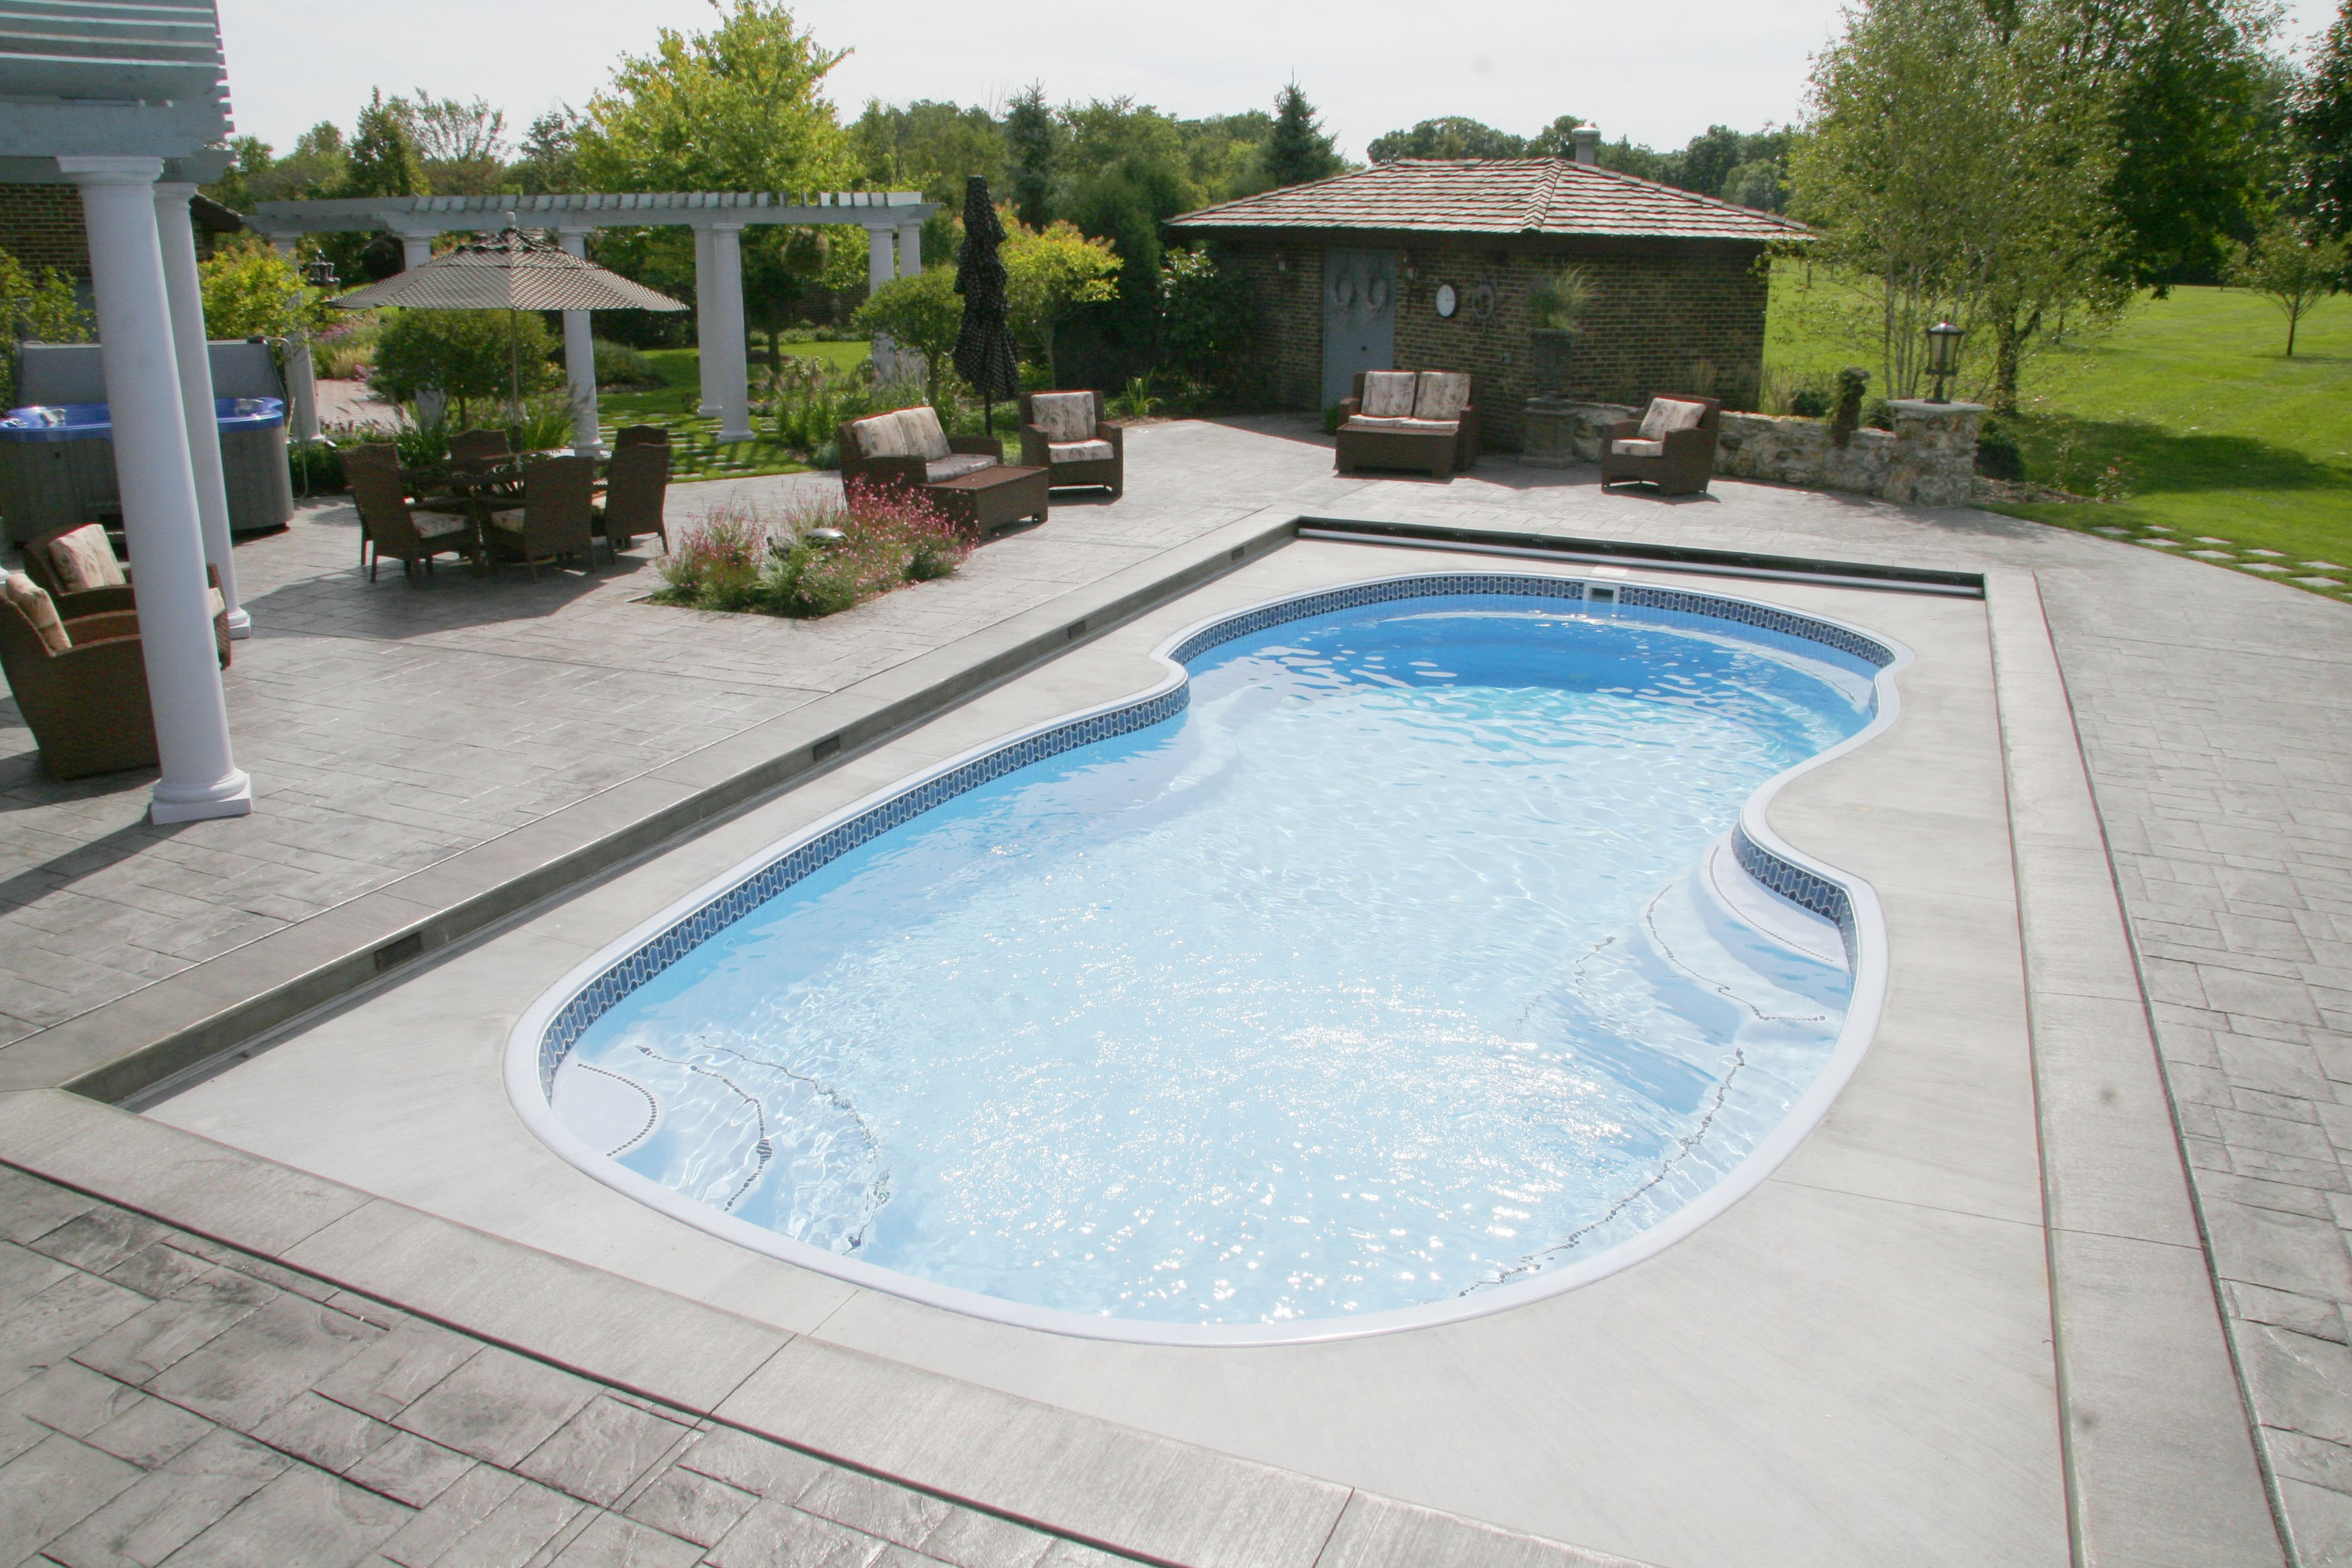 Backyard Pool Supply desrochers backyard pools and spas - swimming pool supply store